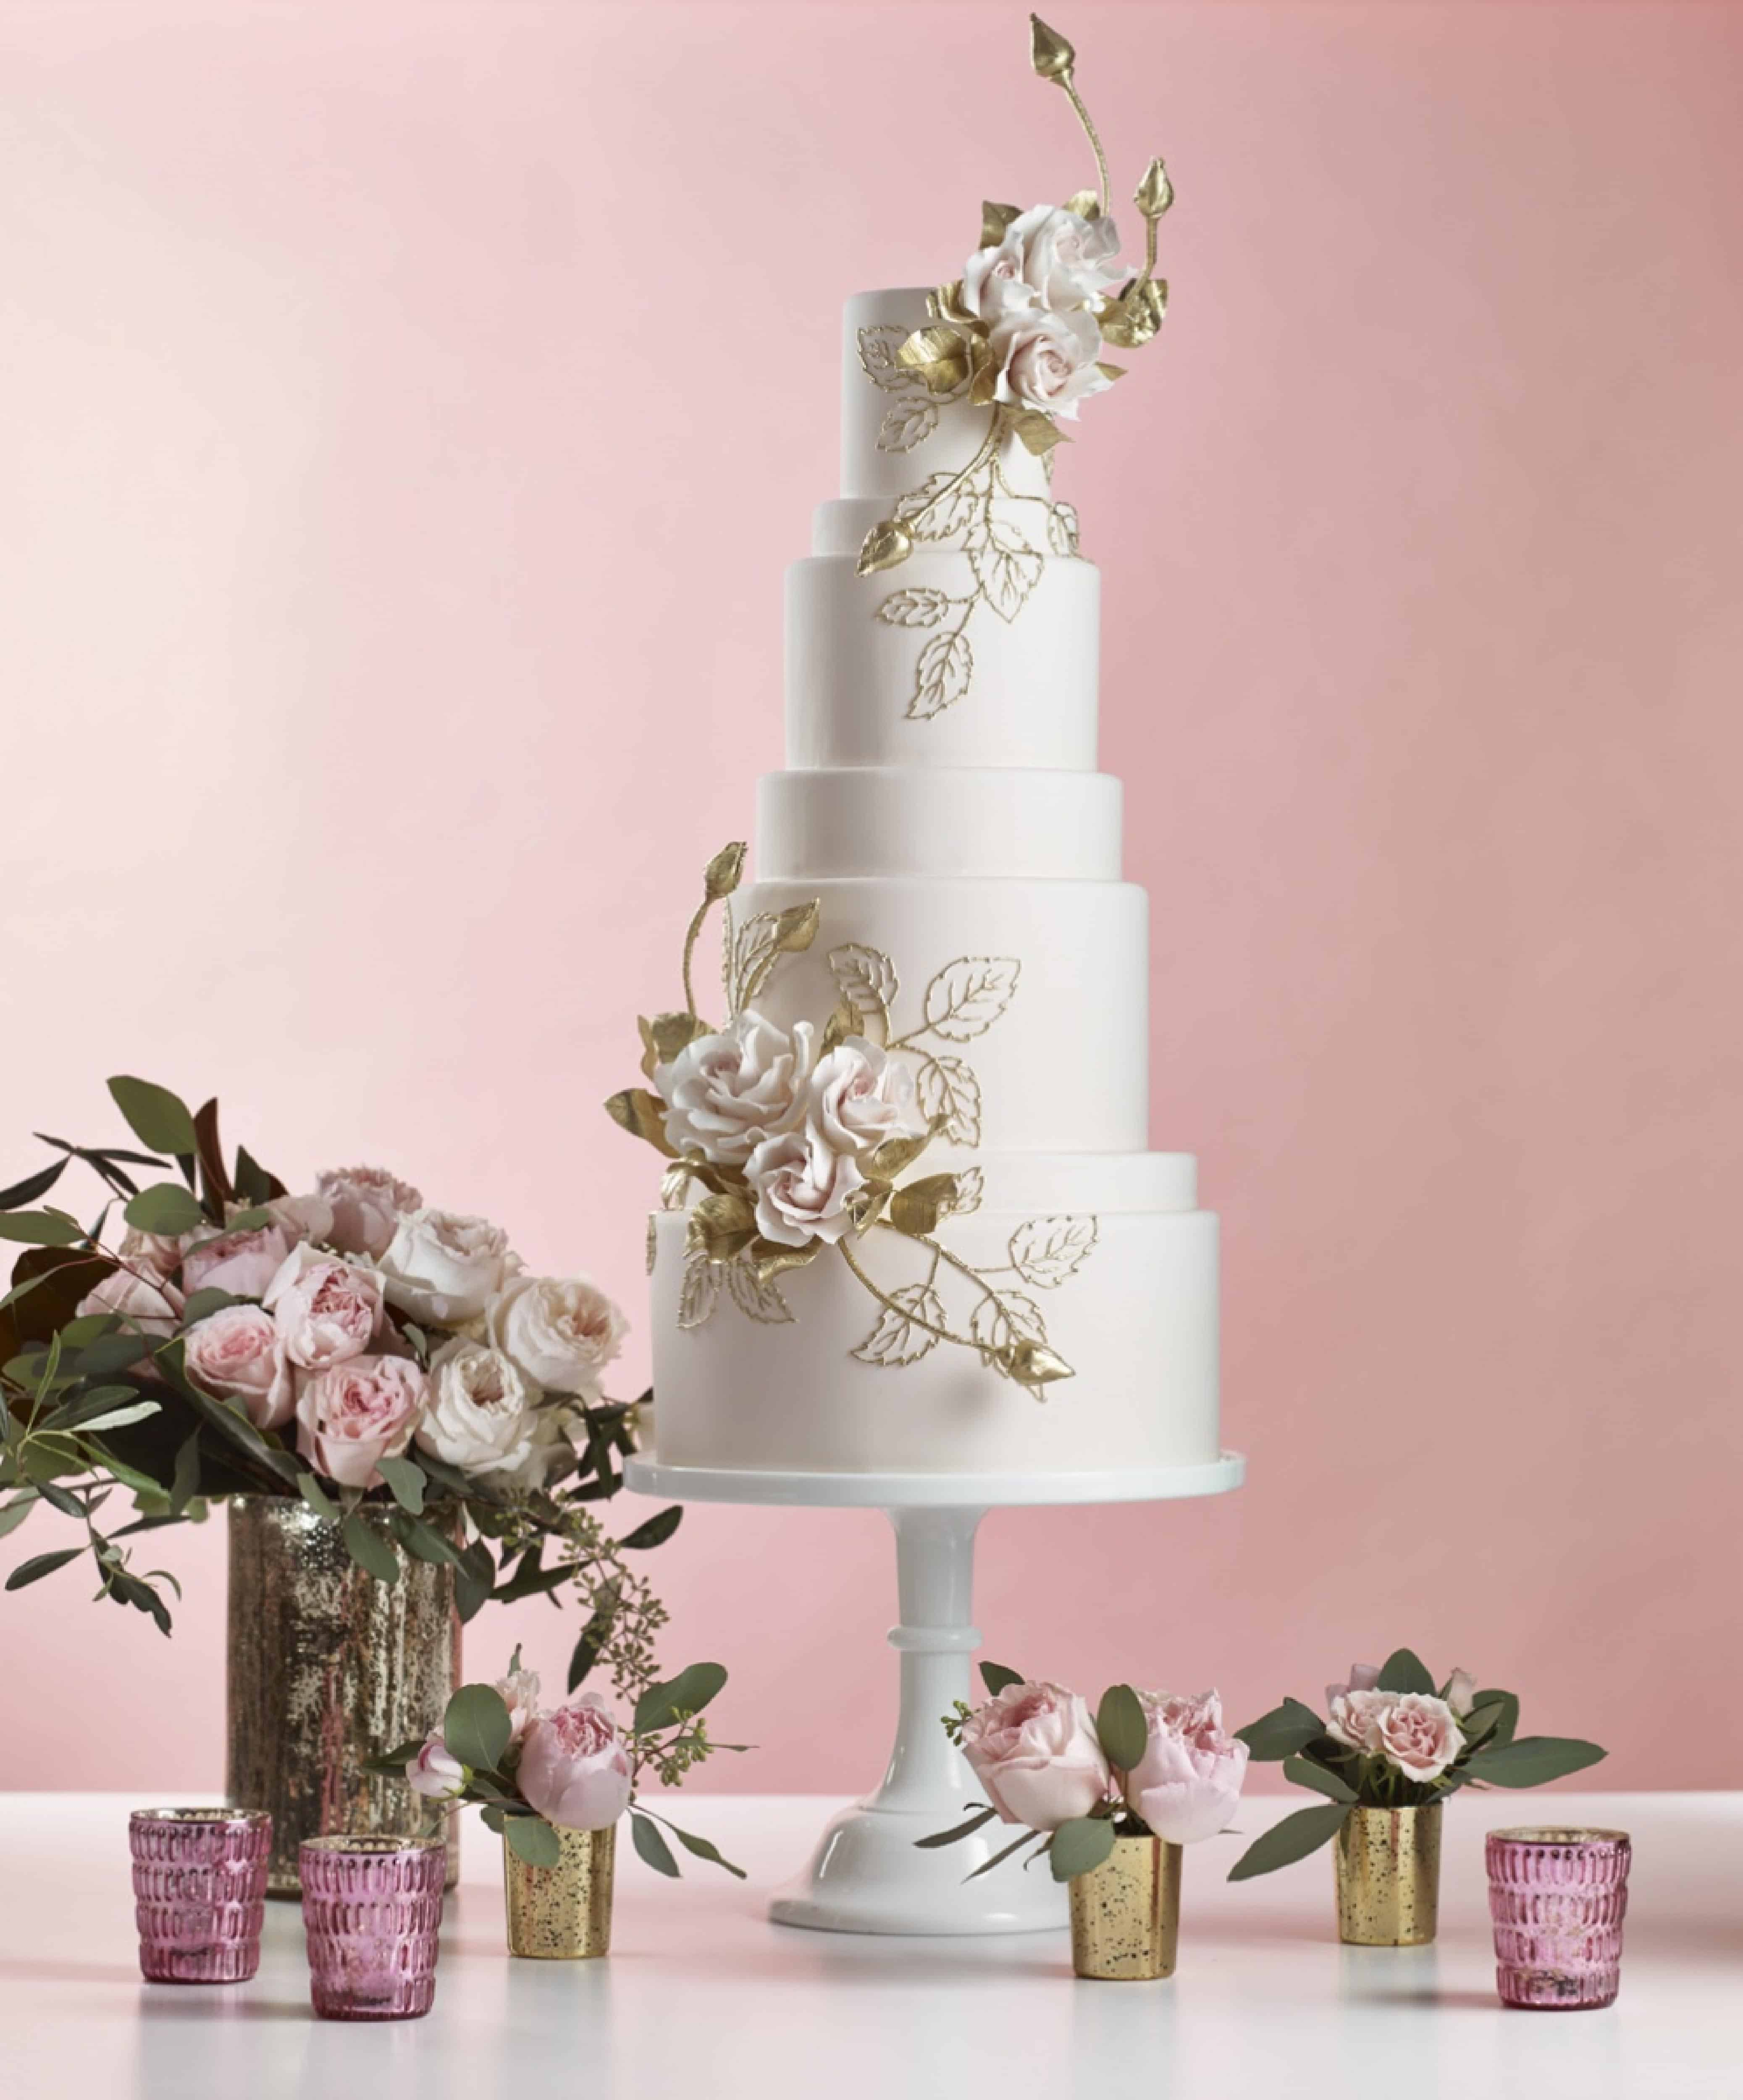 How To: Pair Wedding Cakes and Florals - Real Weddings